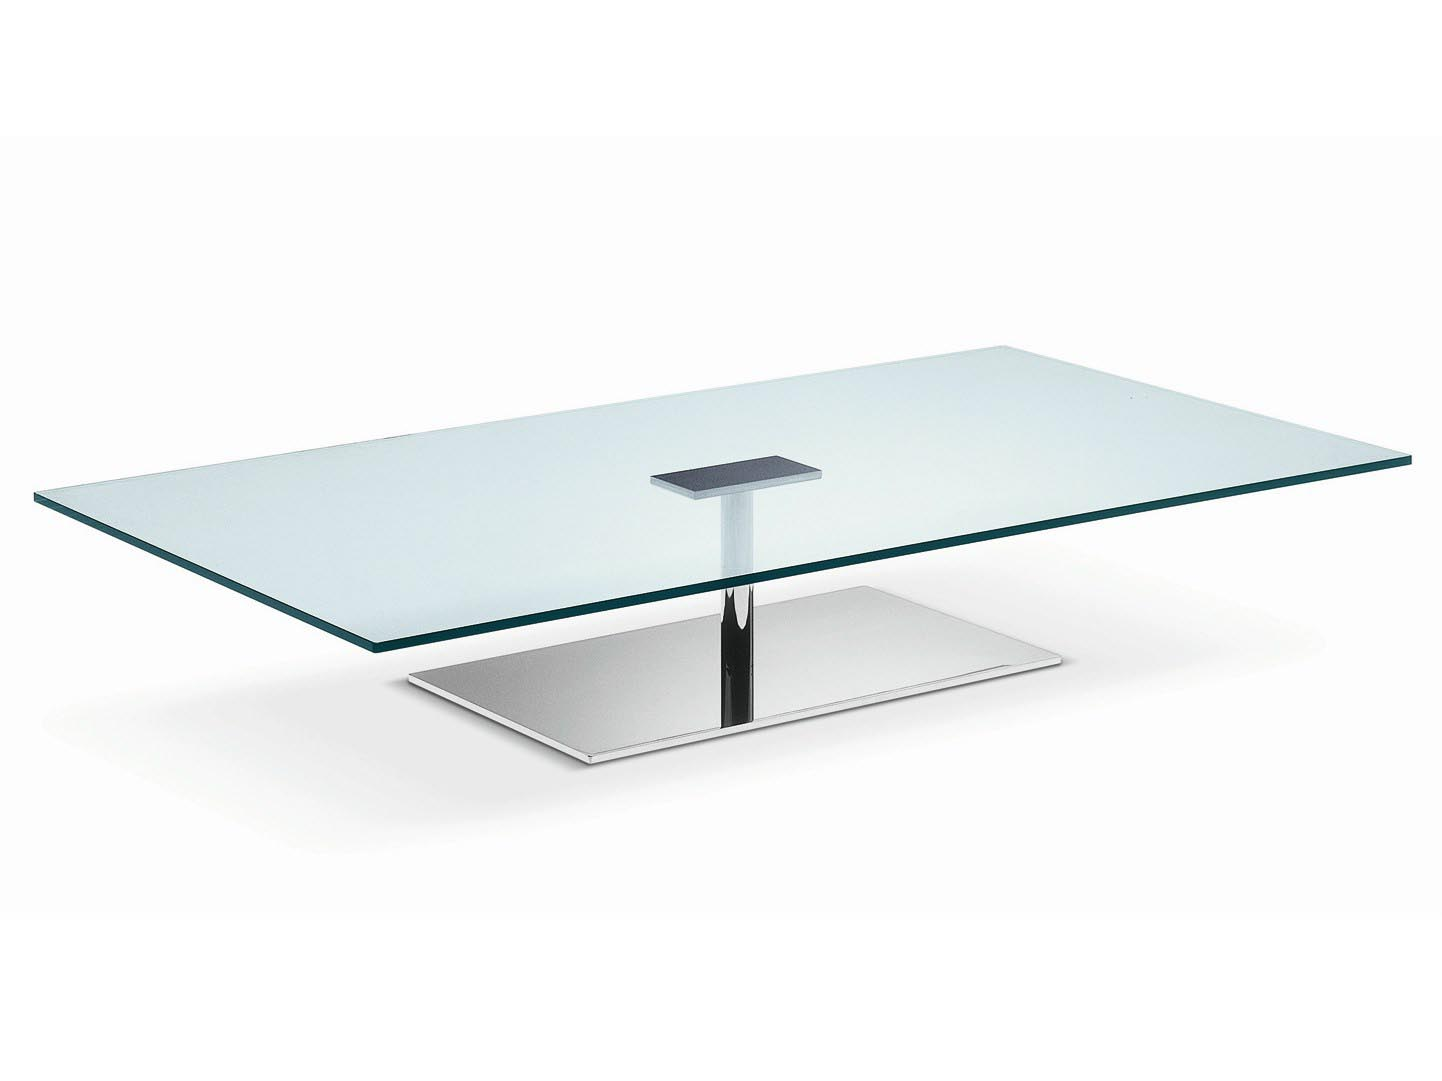 Low glass coffee table coffee table design ideas for Table in table